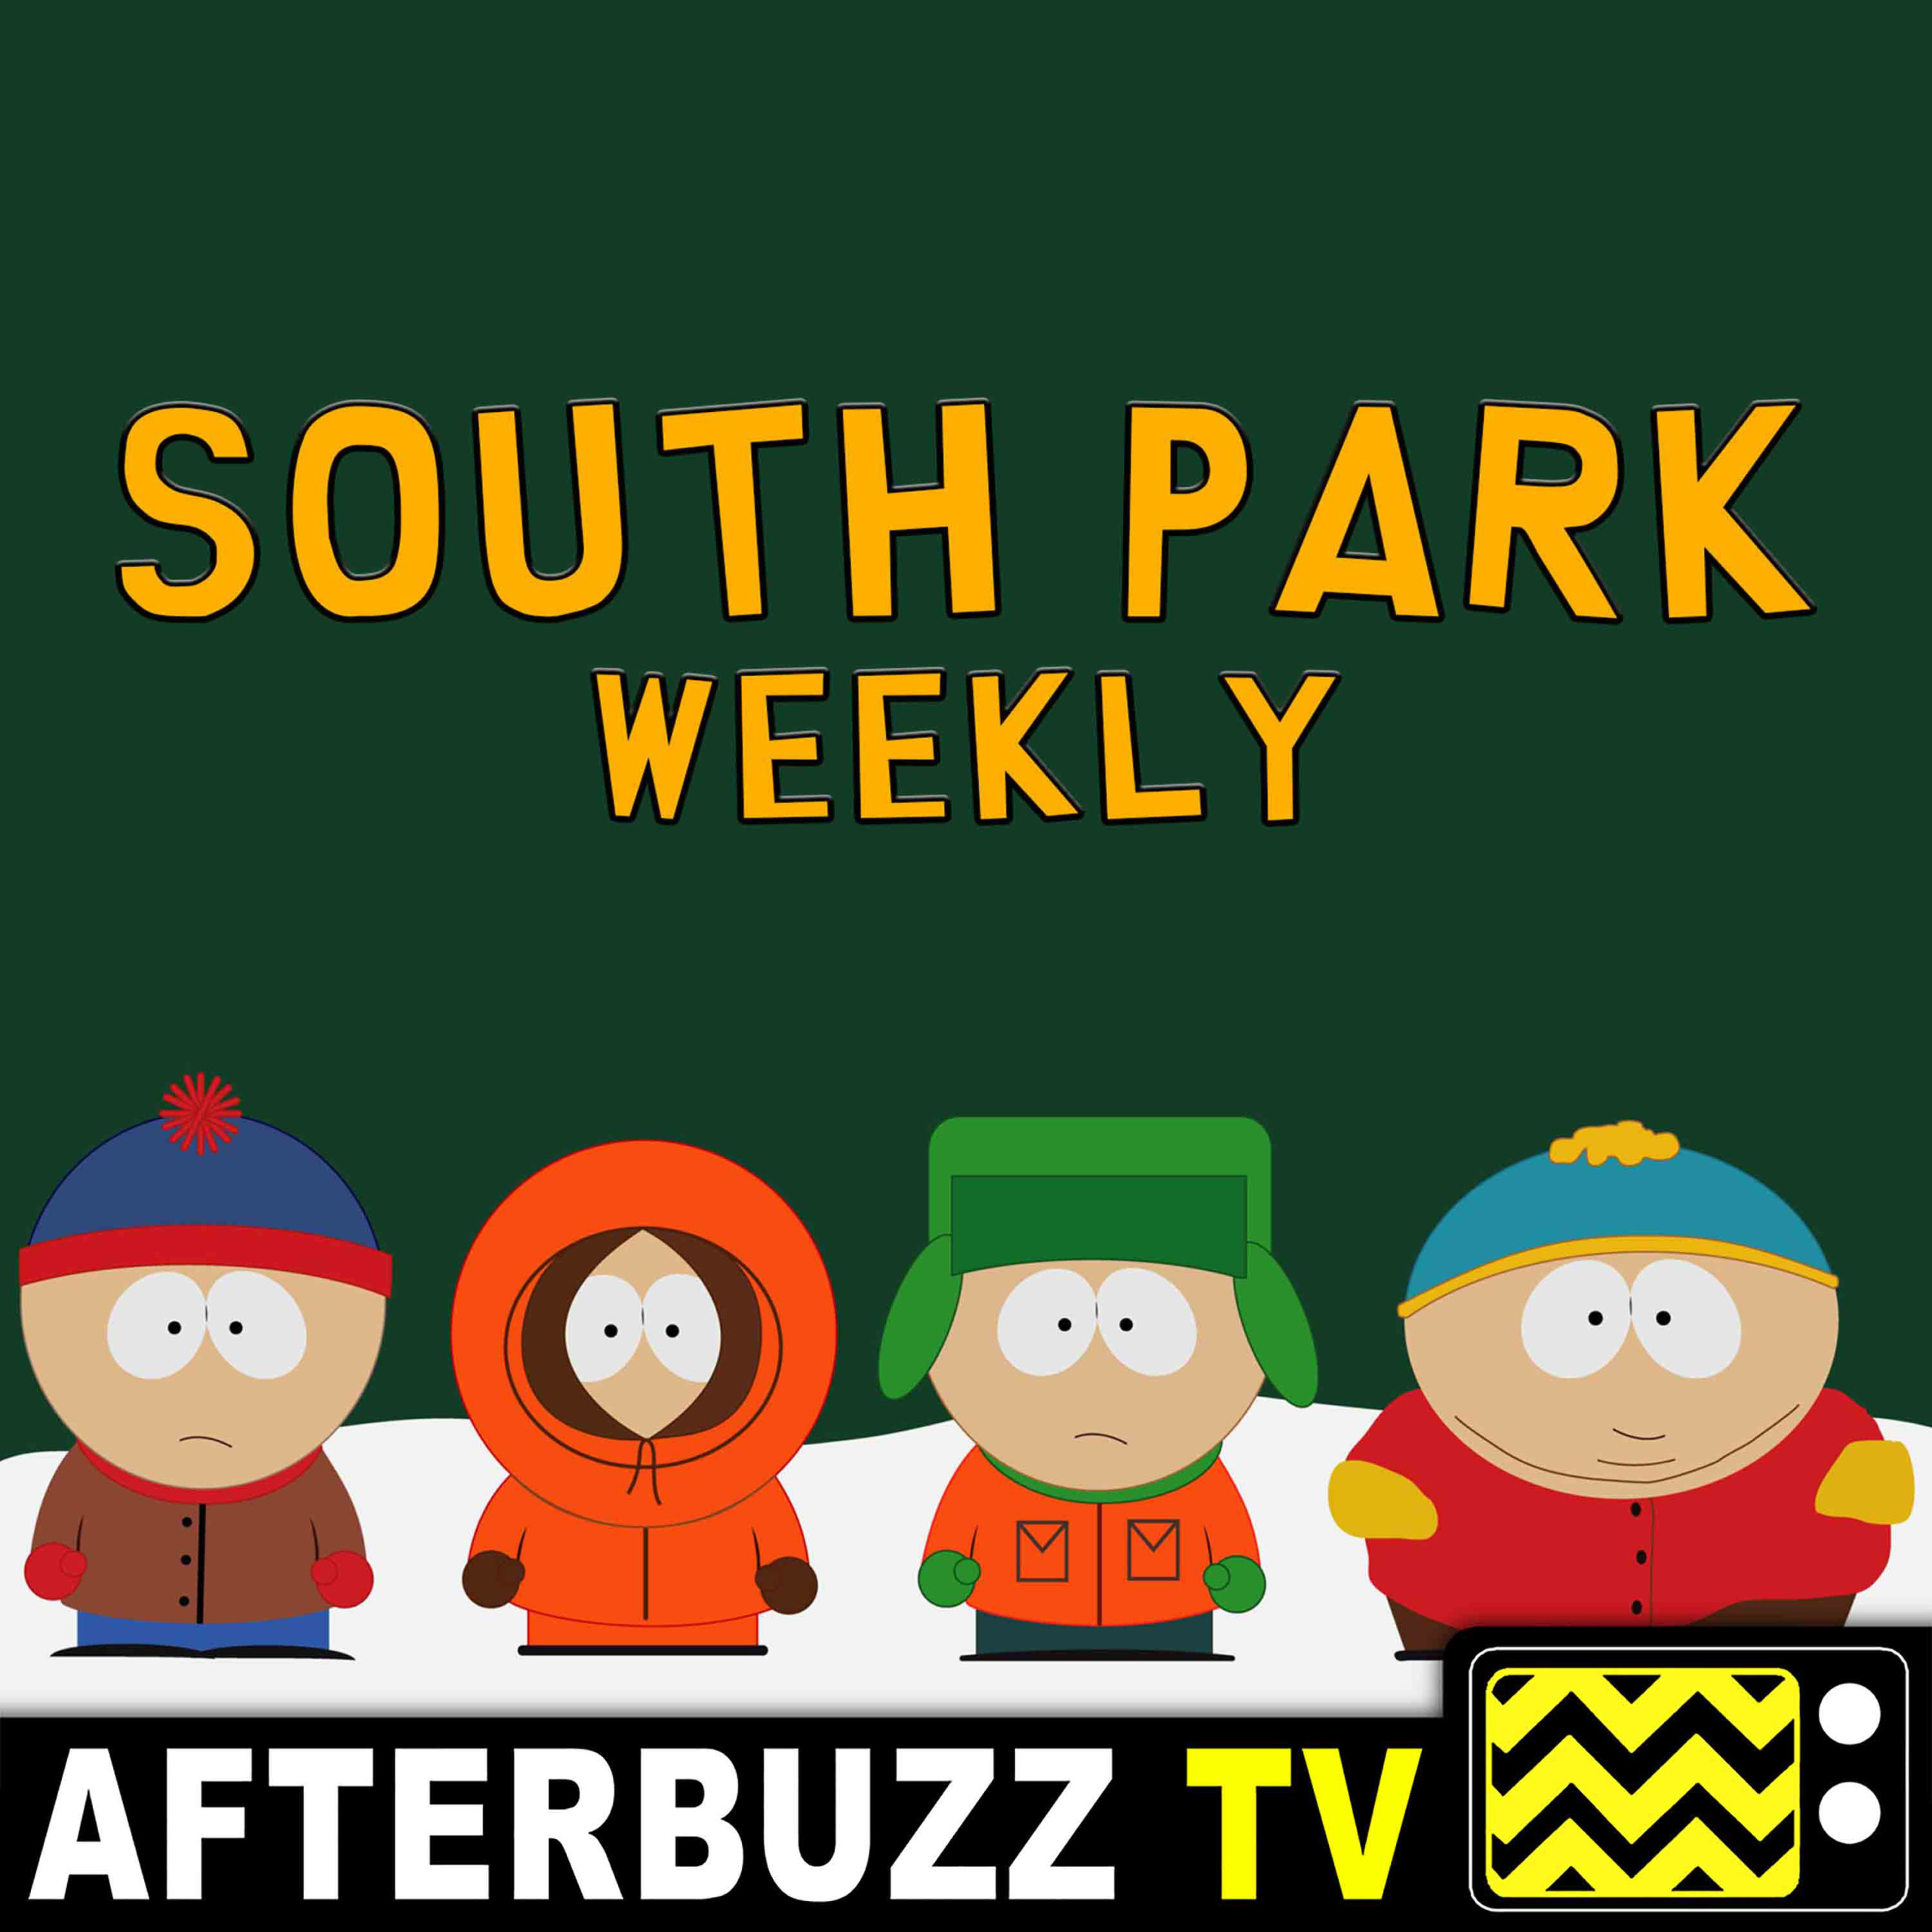 """Turd Burglars; Basic Cable"" Season 23 Episodes 8 & 9 'South Park' Review"